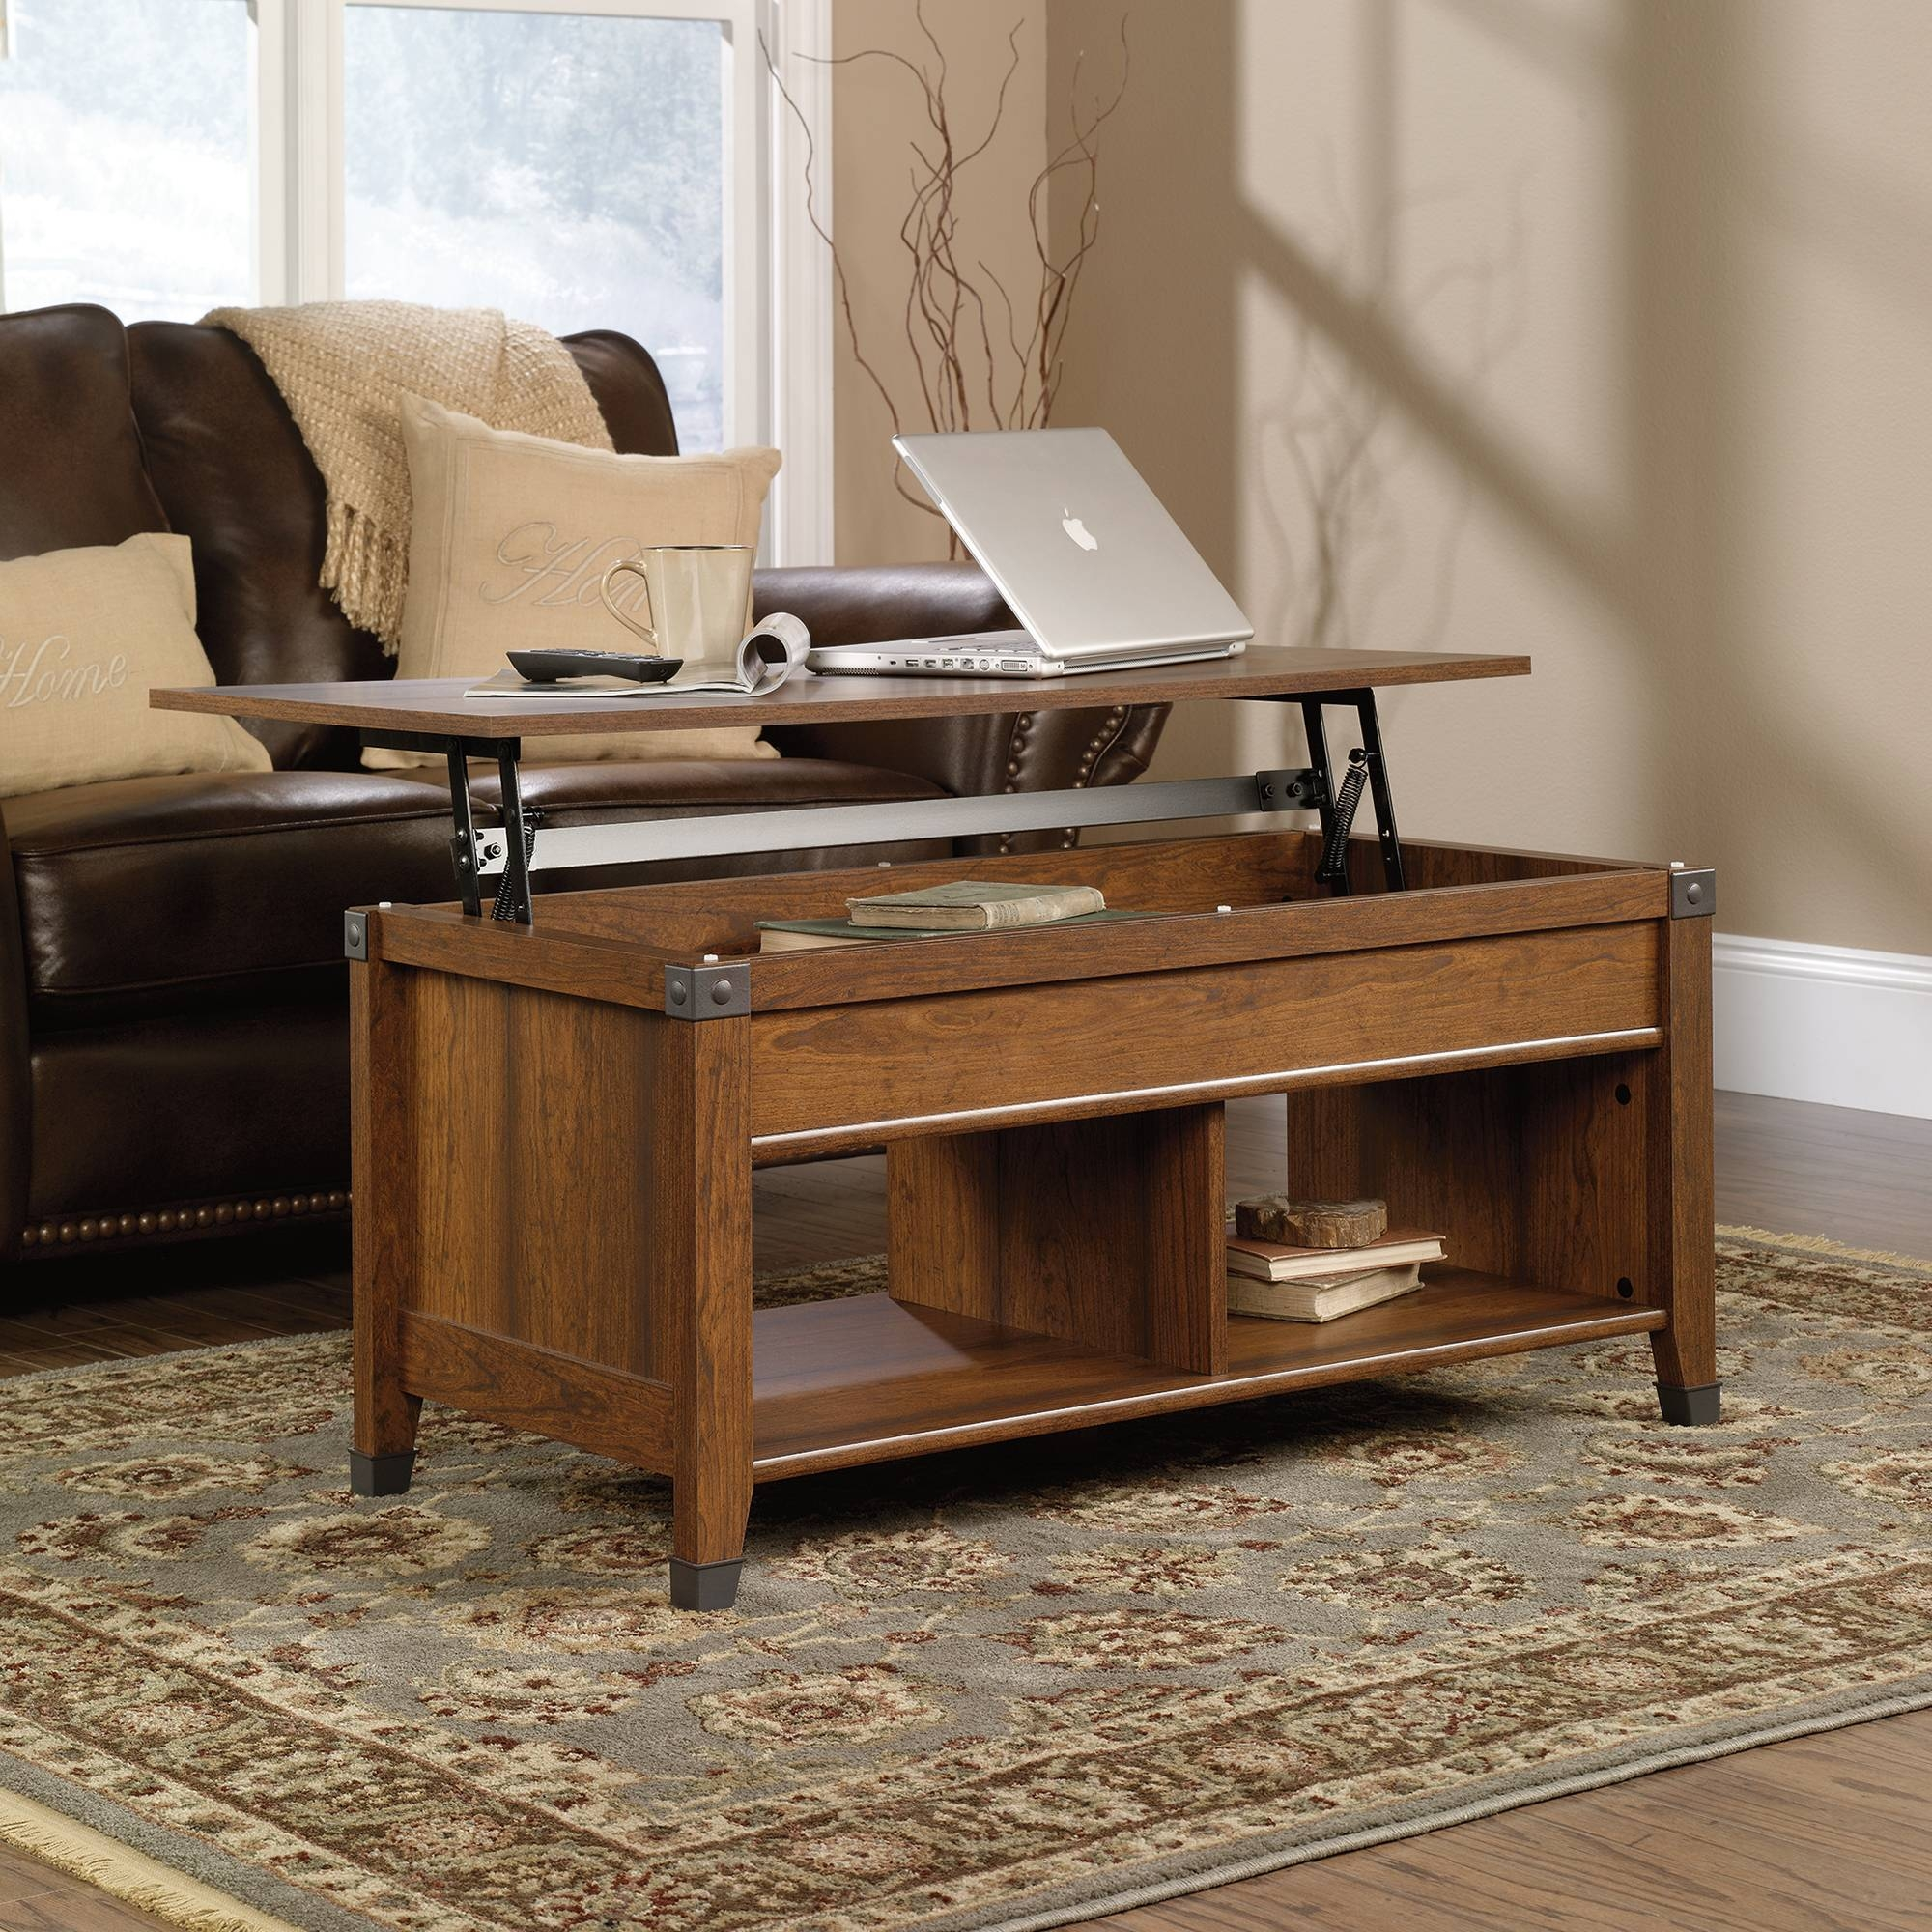 Carson Forge | Lift-Top Coffee Table | 414444 | Sauder in Flip Up Coffee Tables (Image 5 of 30)